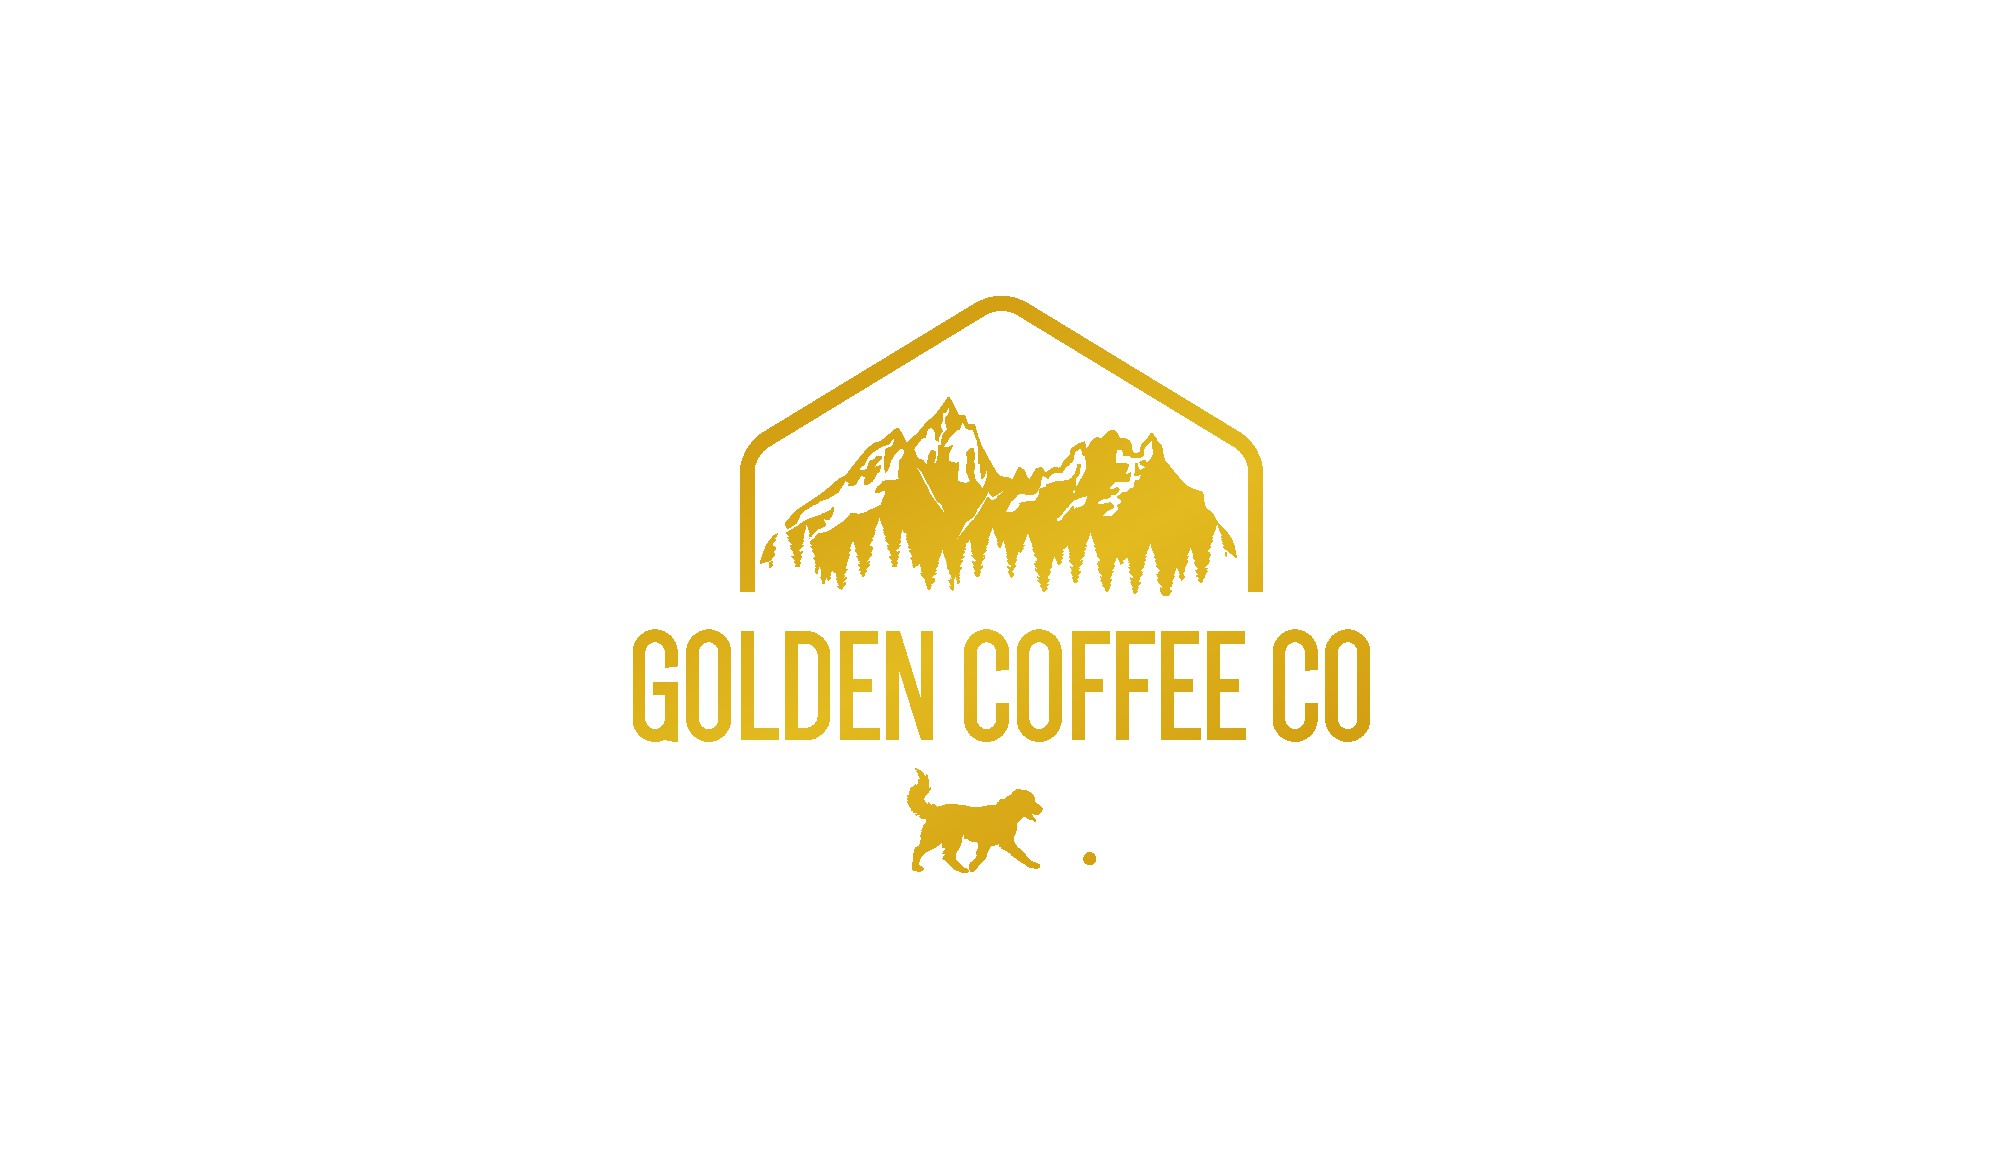 Golden Coffee Co - Apparel and Merchandise